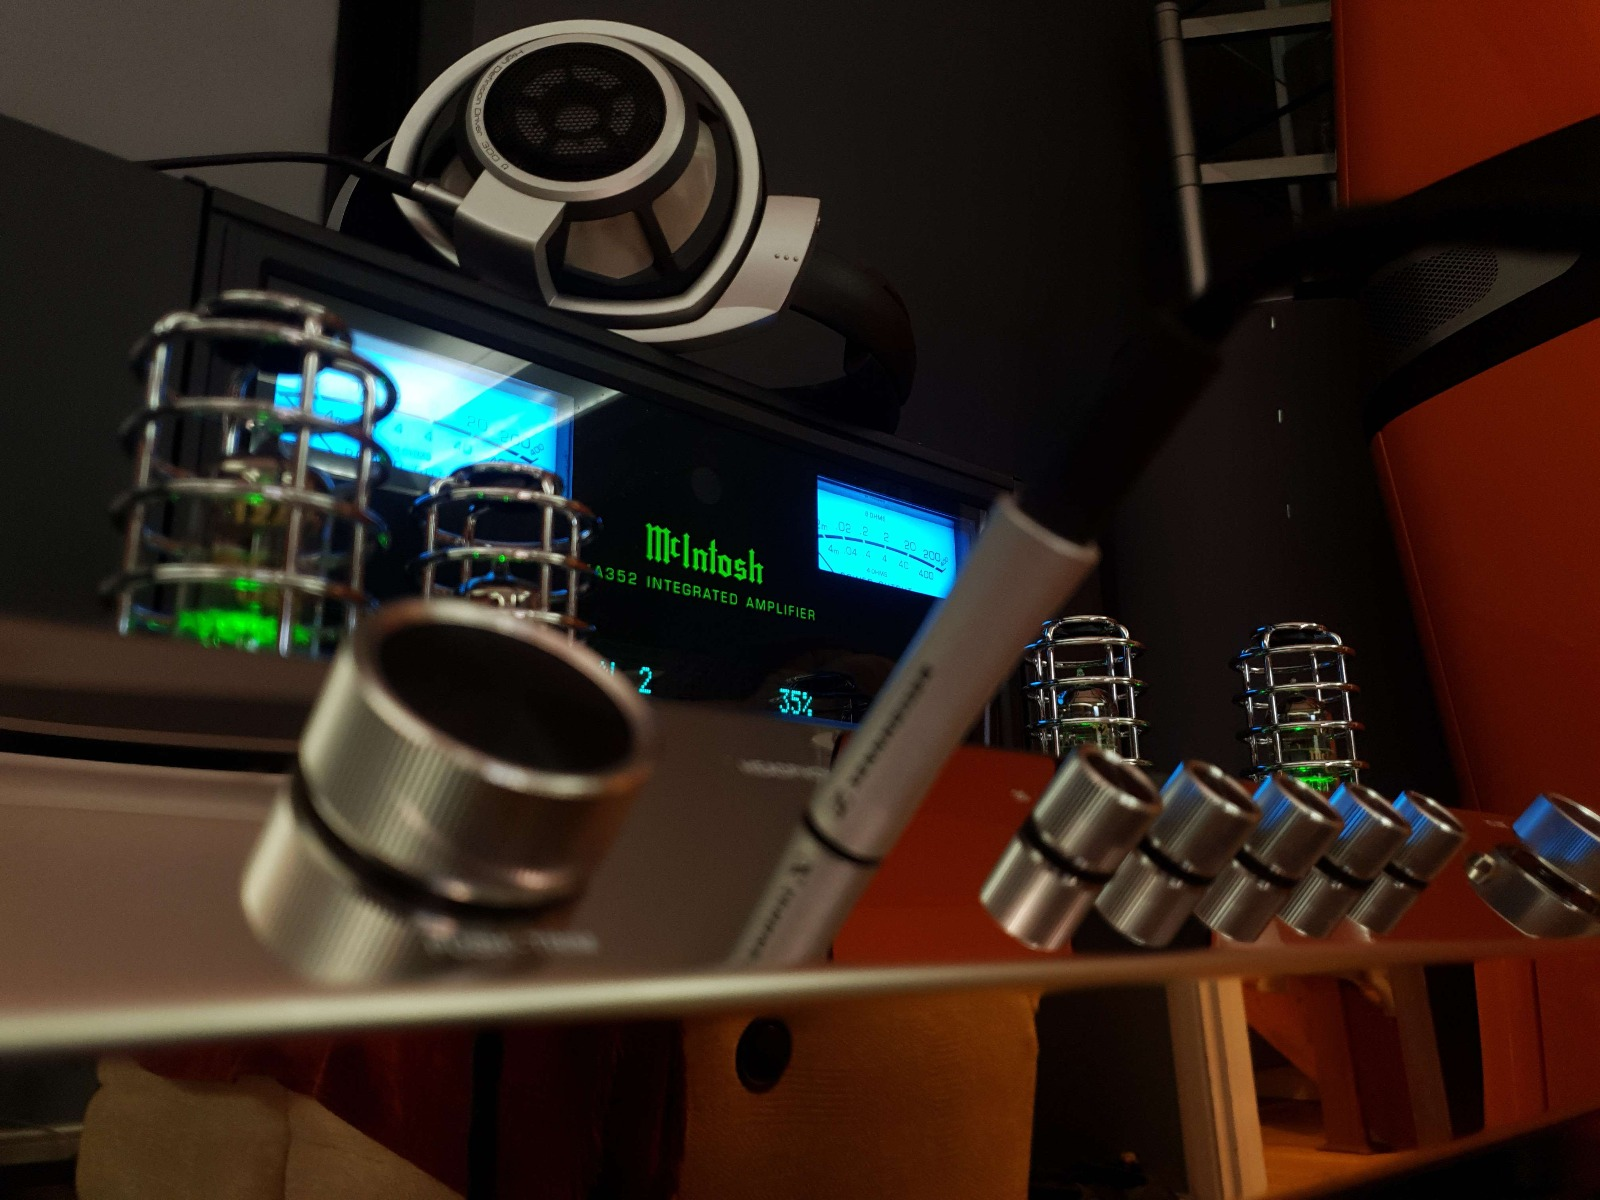 McIntosh MA352 with Headphones